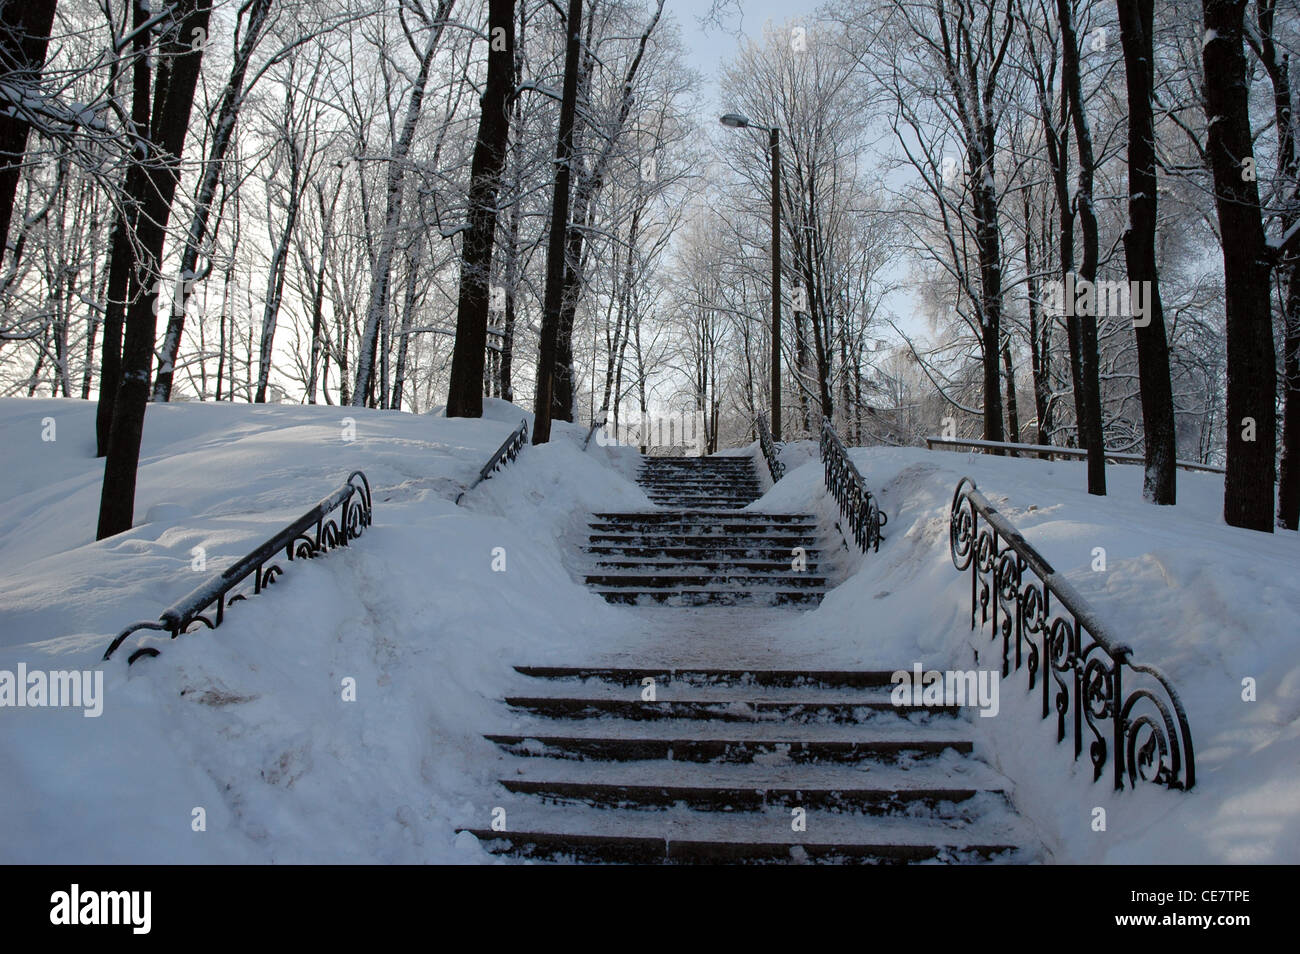 public park stair and handrail covered snow - Stock Image